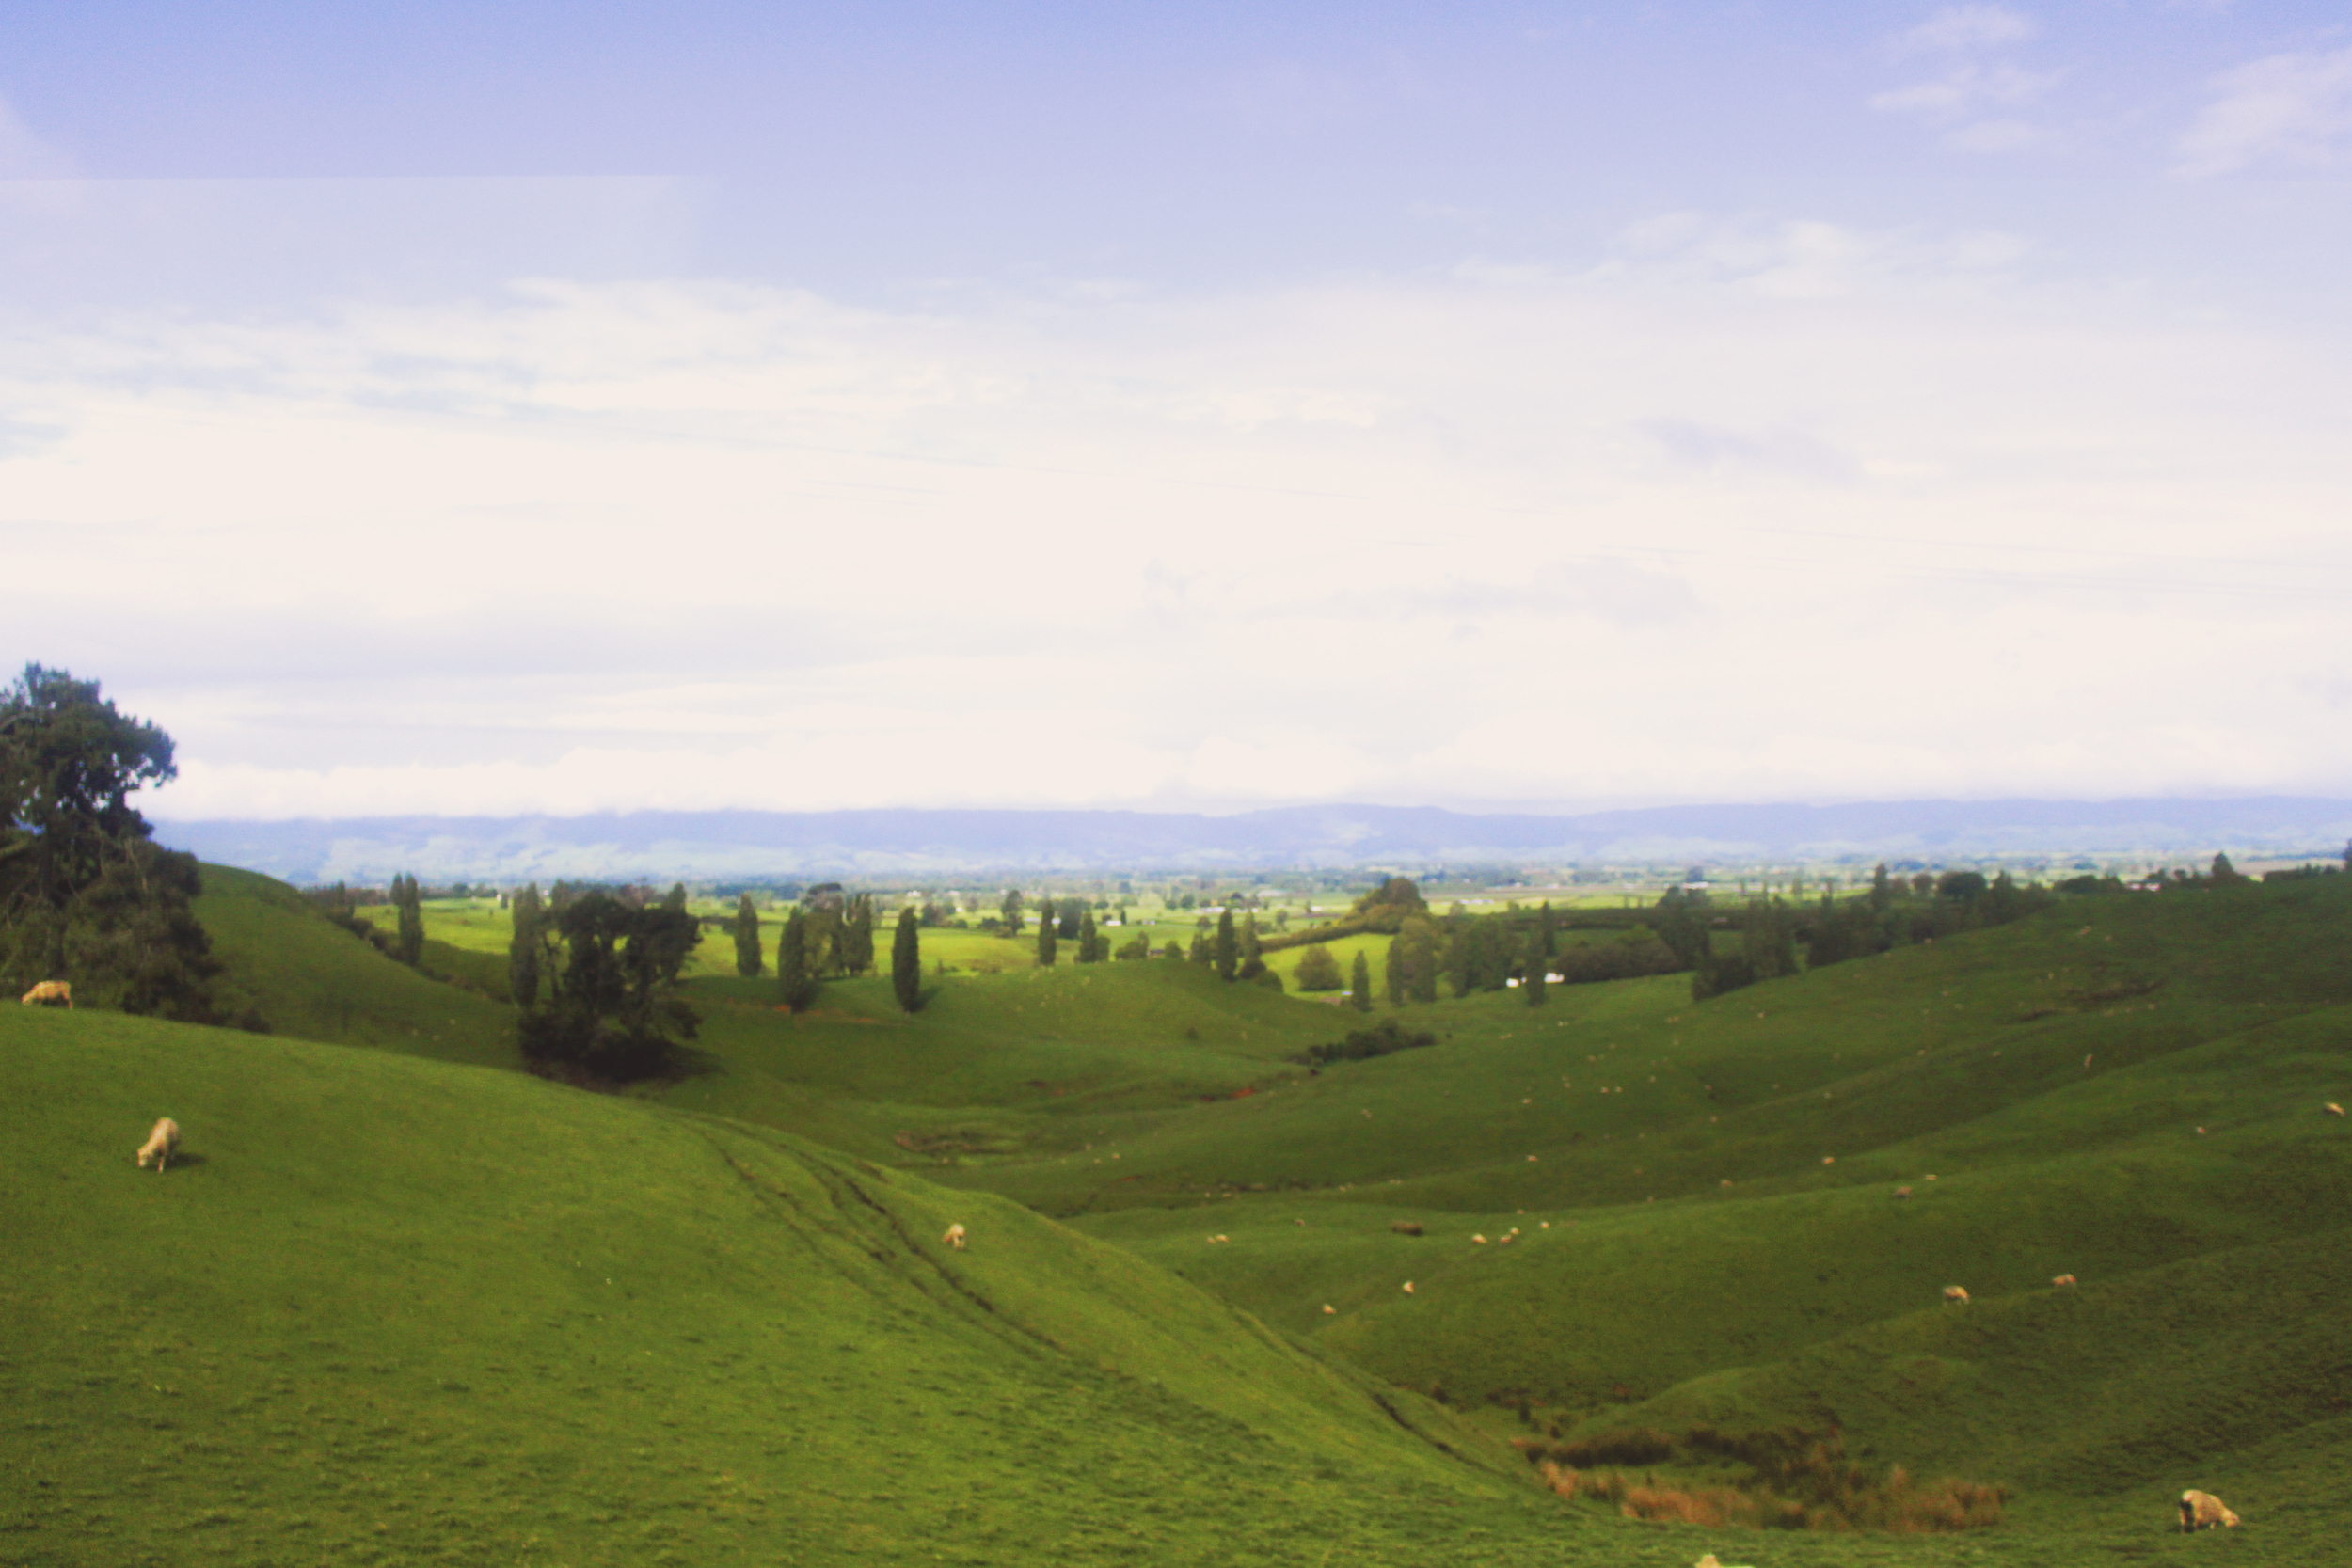 A slightly blurry out-the-bus-window shot of the rolling hills of Matamata, NZ.